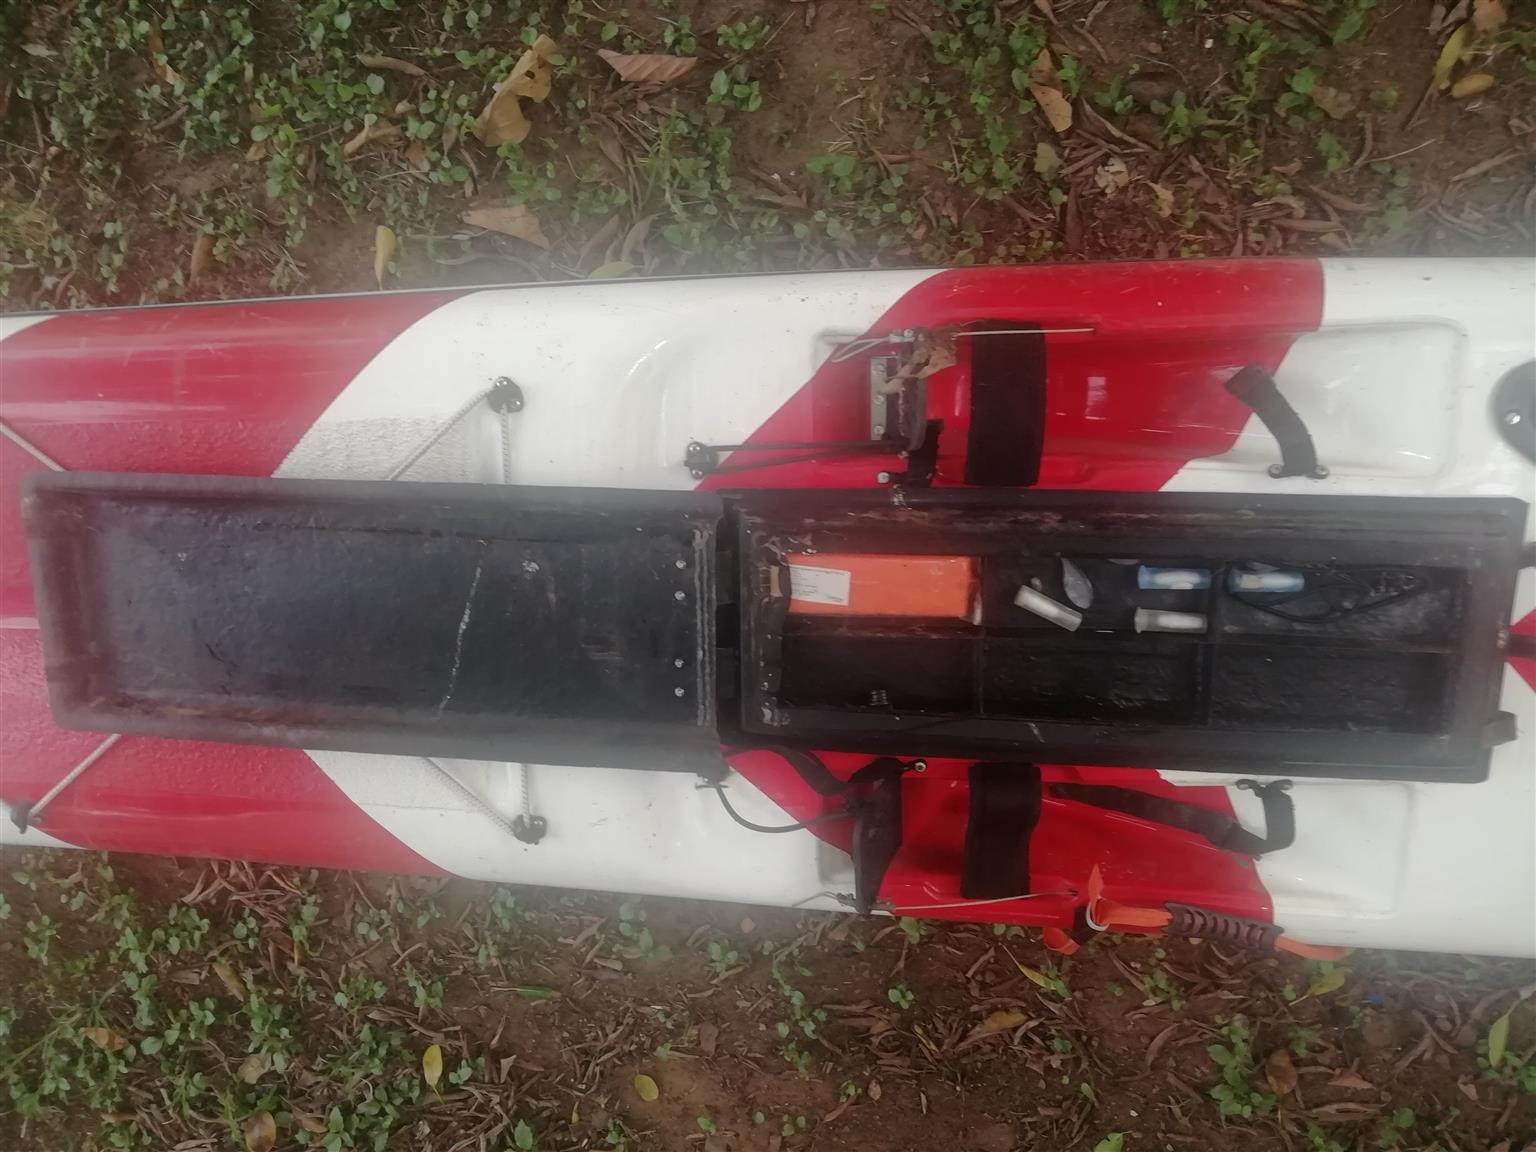 Neptune fishing kayak fully equipped